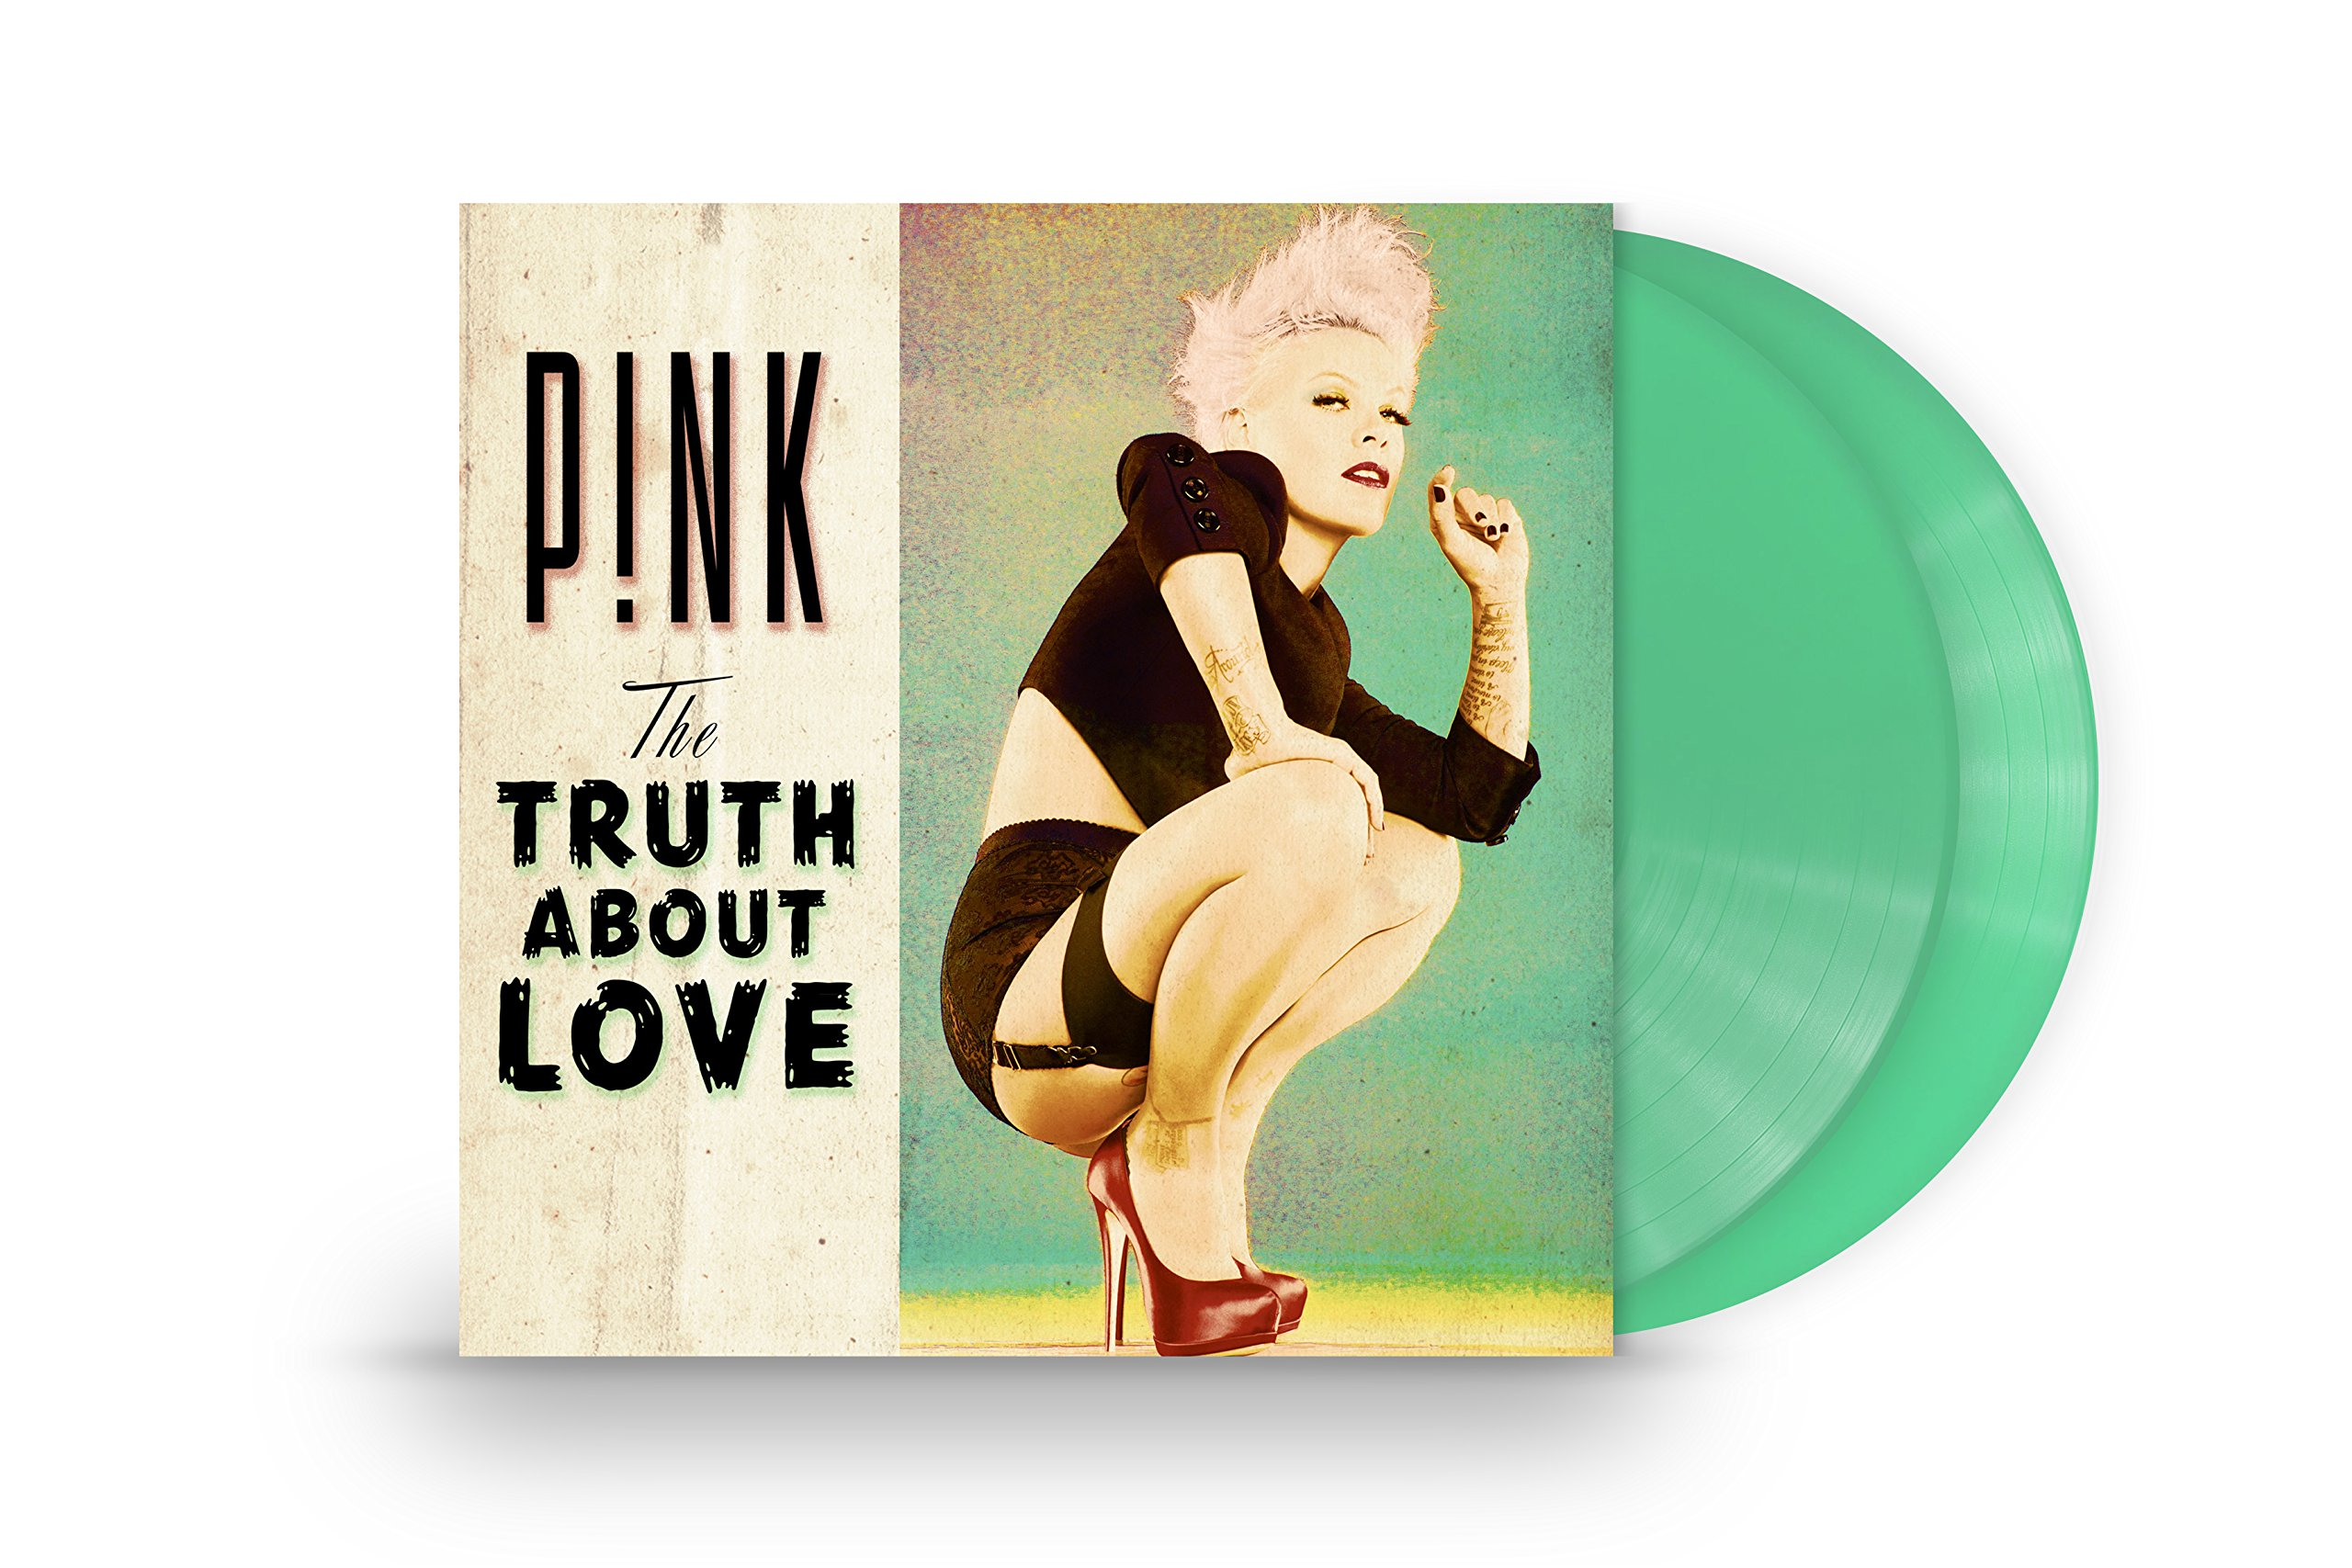 Vinilo : Pink - The Truth About Love (Colored Vinyl, Download Insert, 2PC)